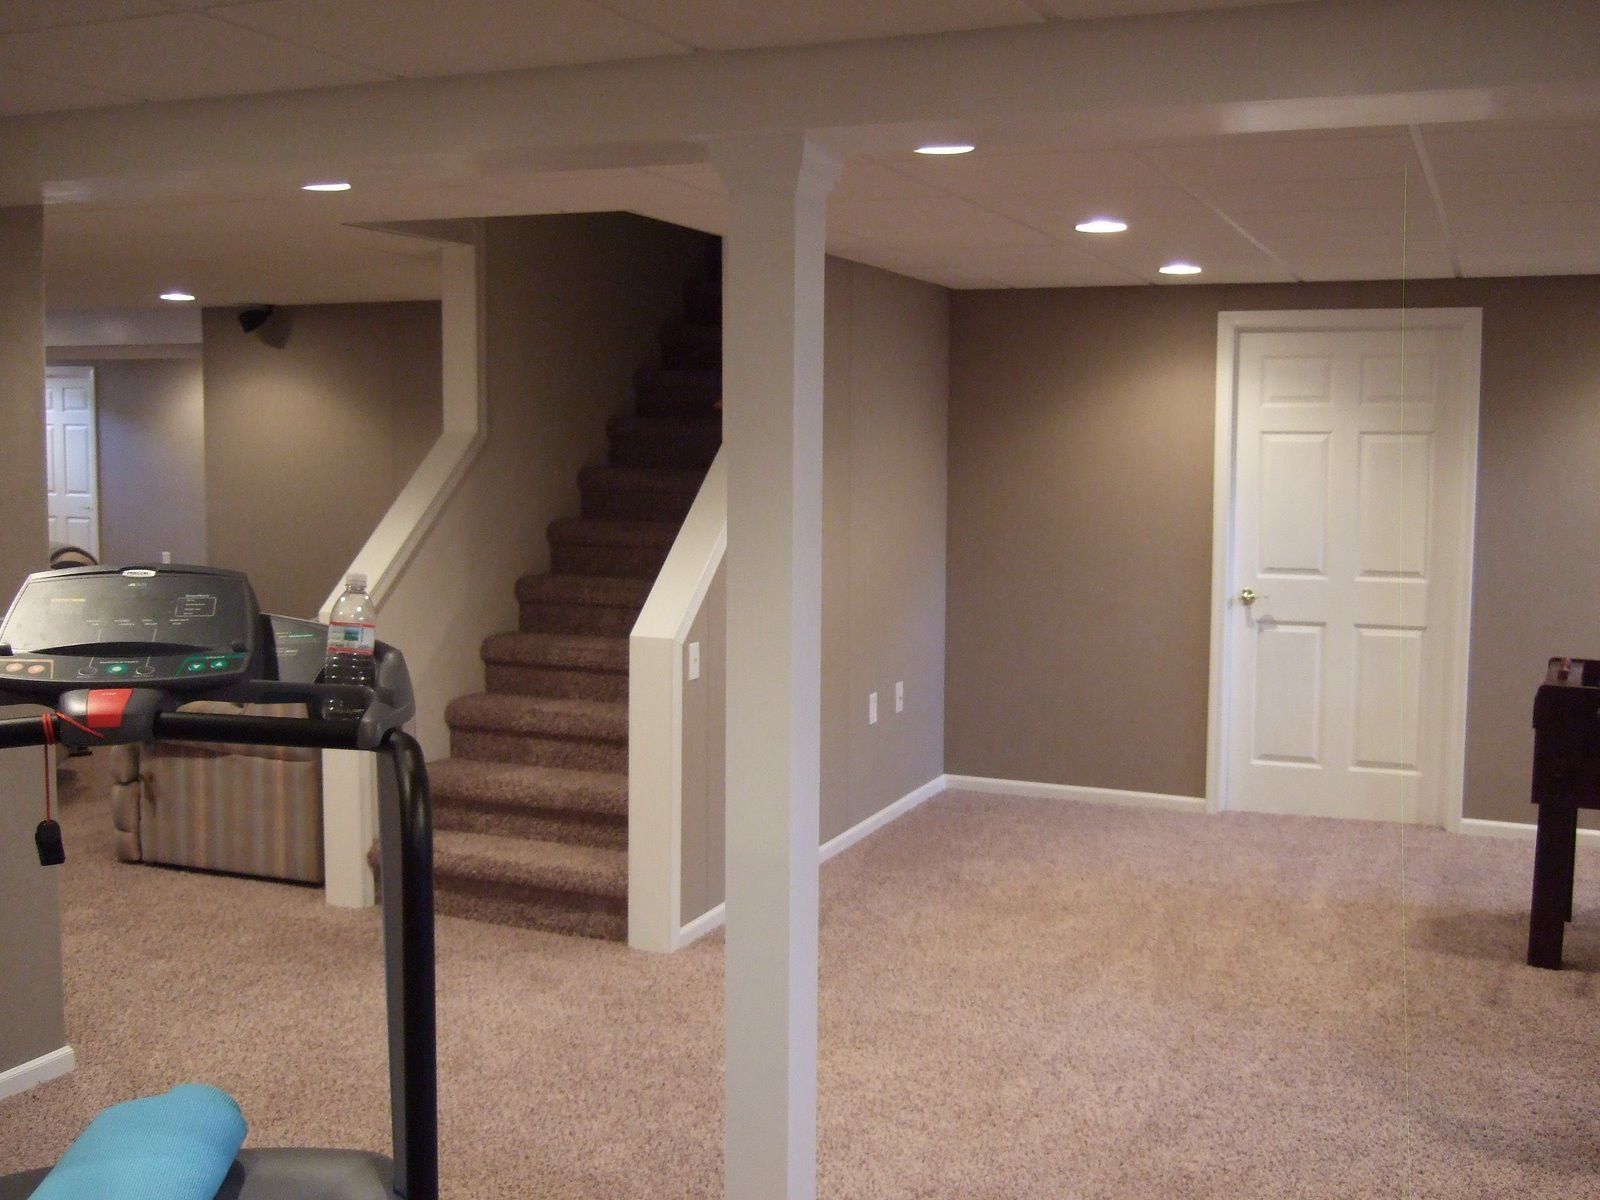 Best ideas about Small Basement Ideas On A Budget . Save or Pin House Plan Stunning Design Unfinished Basement Ideas Now.